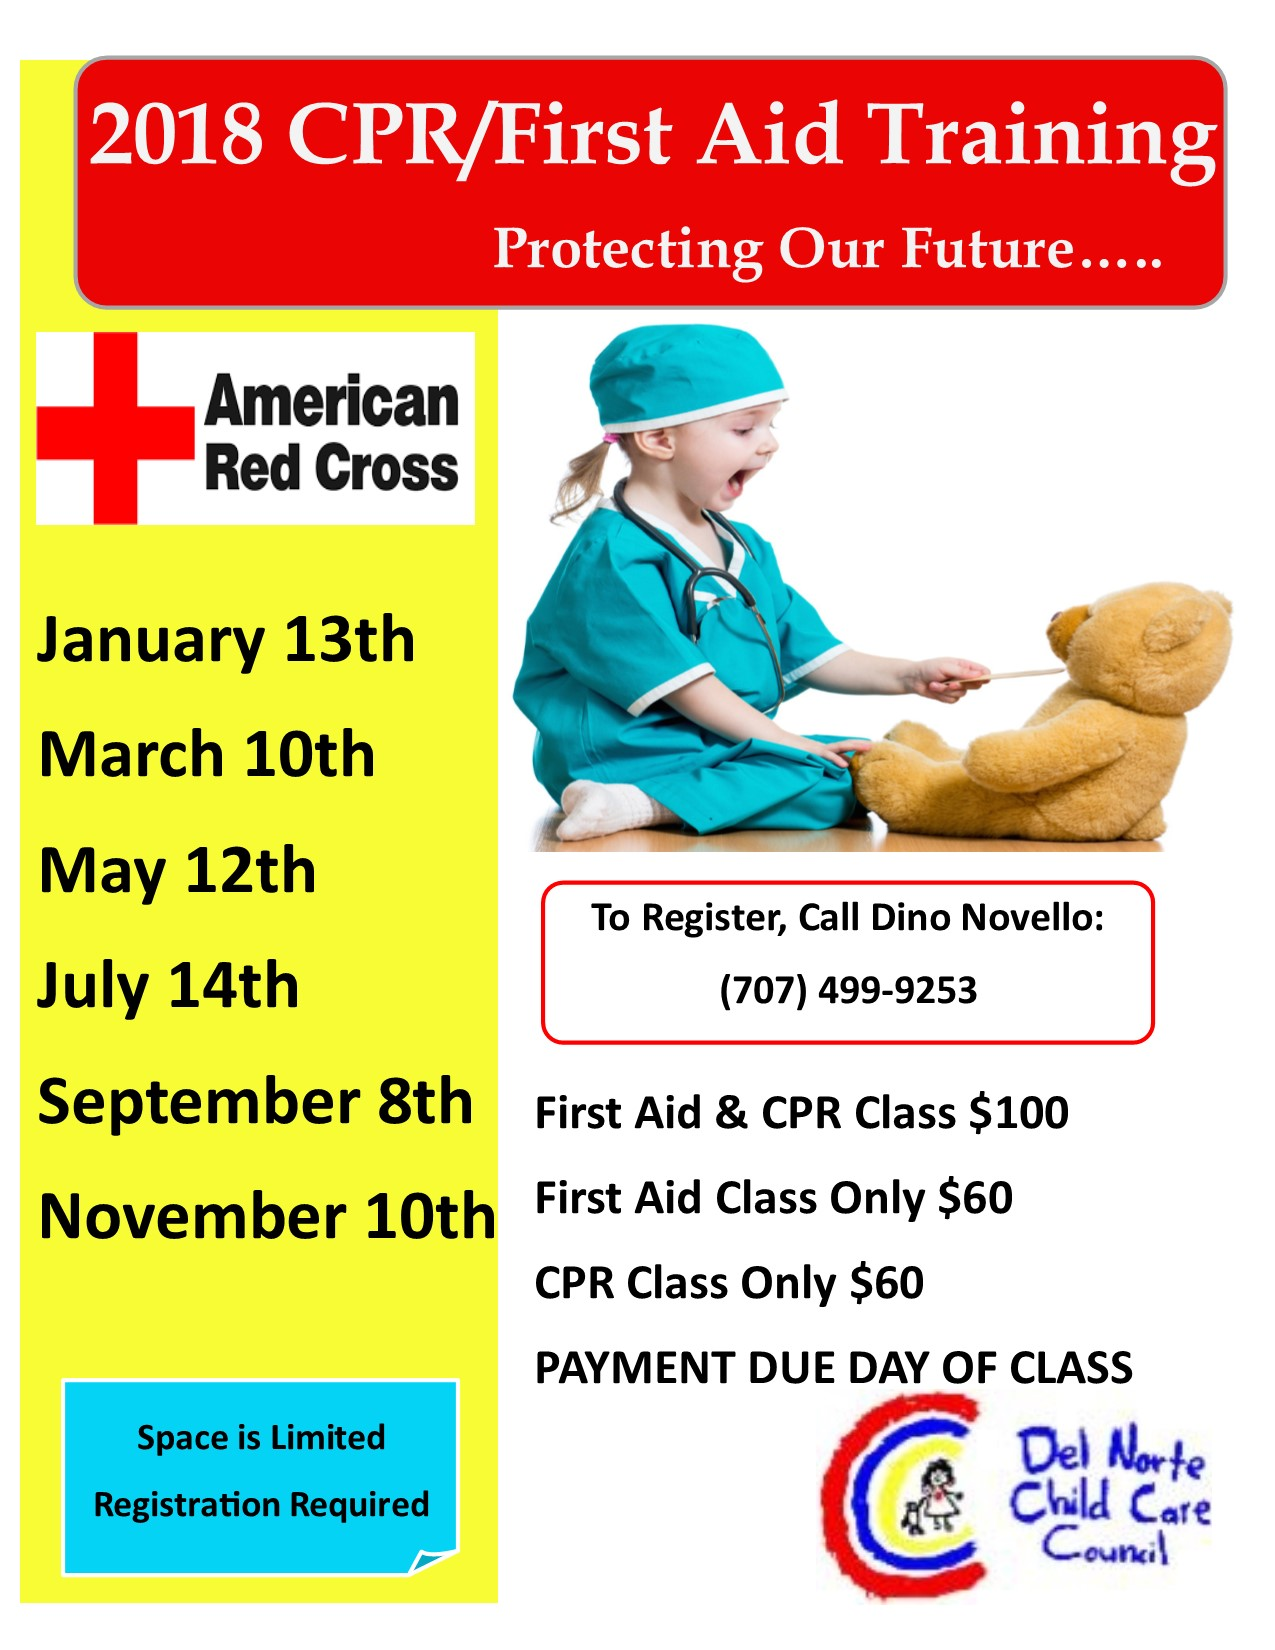 CPR & First Aid Training - Del Norte Child Care Council